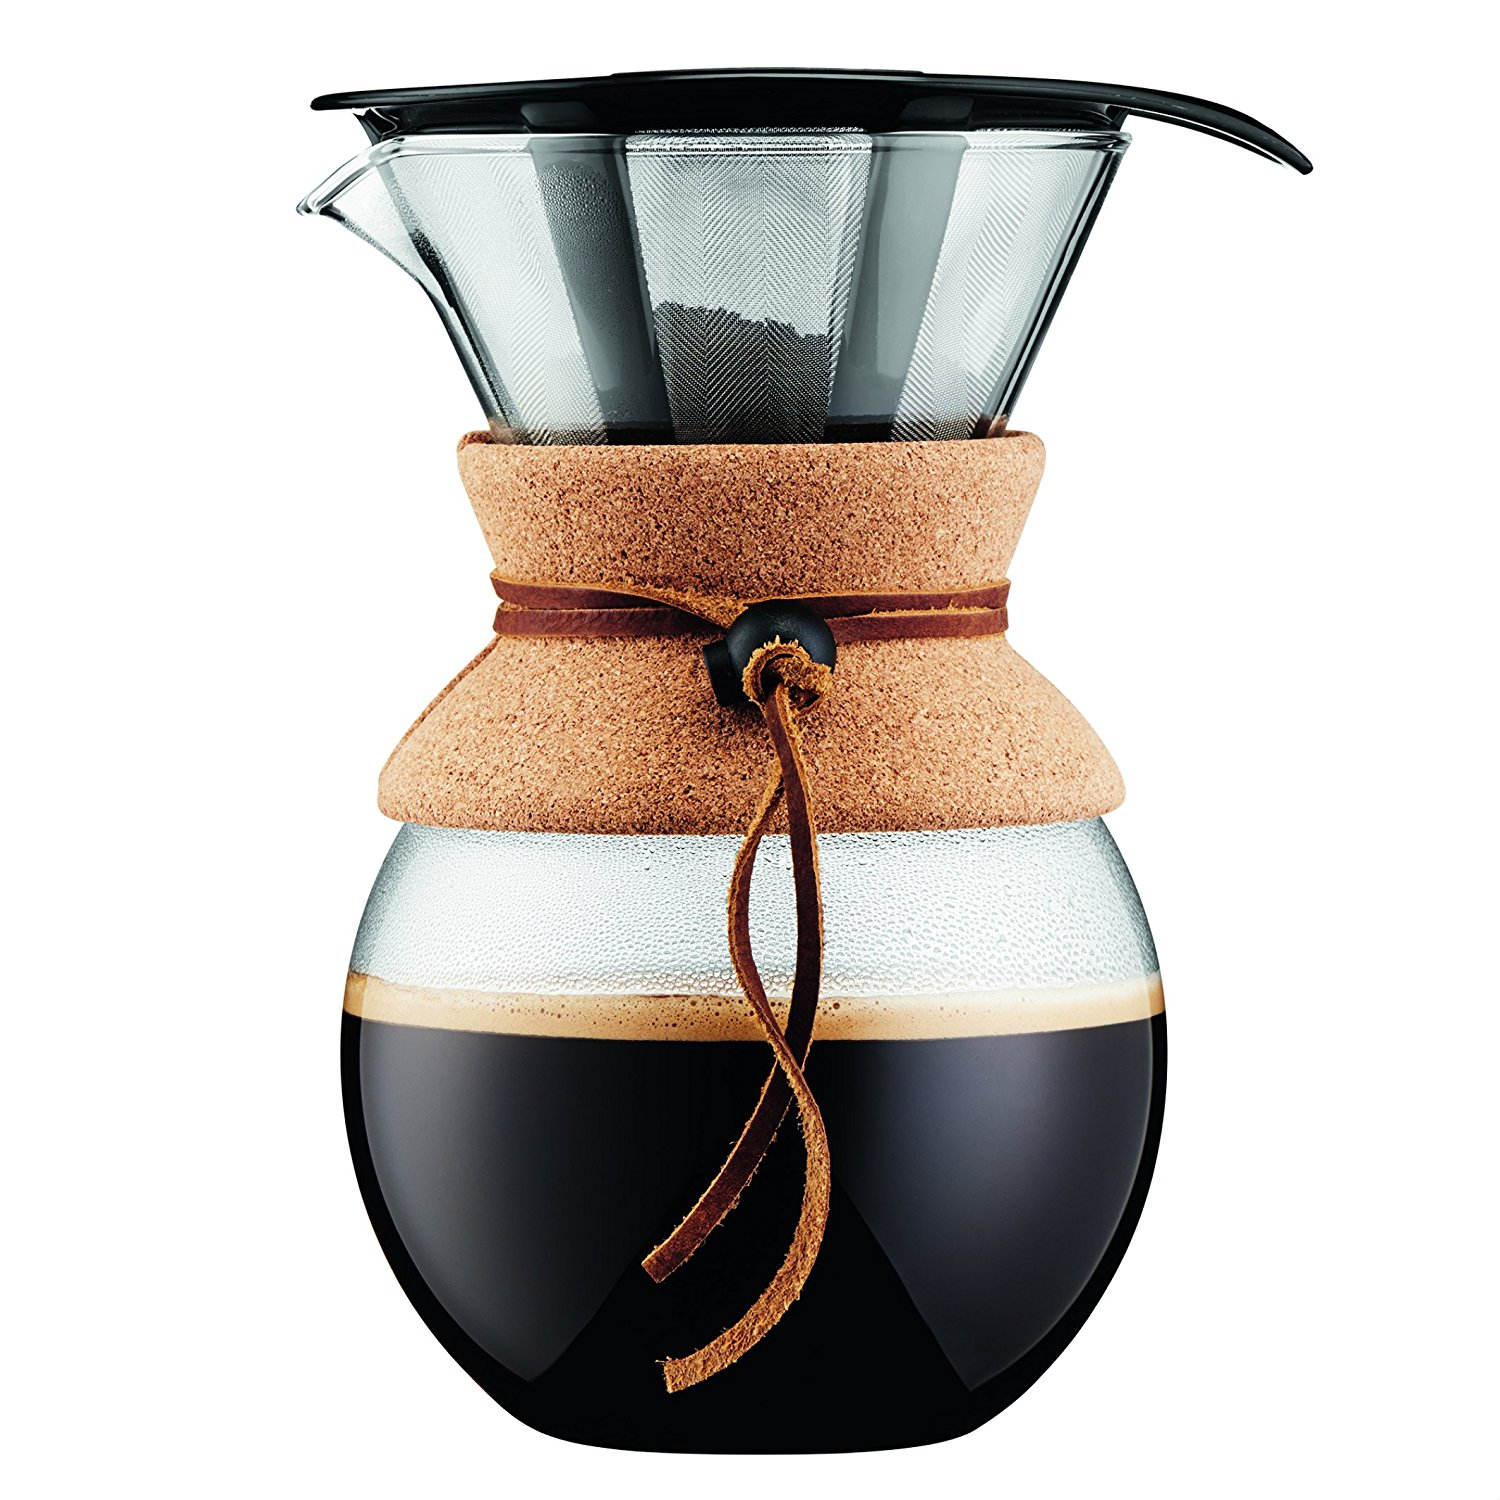 Bodum Pour Over Coffee Maker With Permanent Filter Review